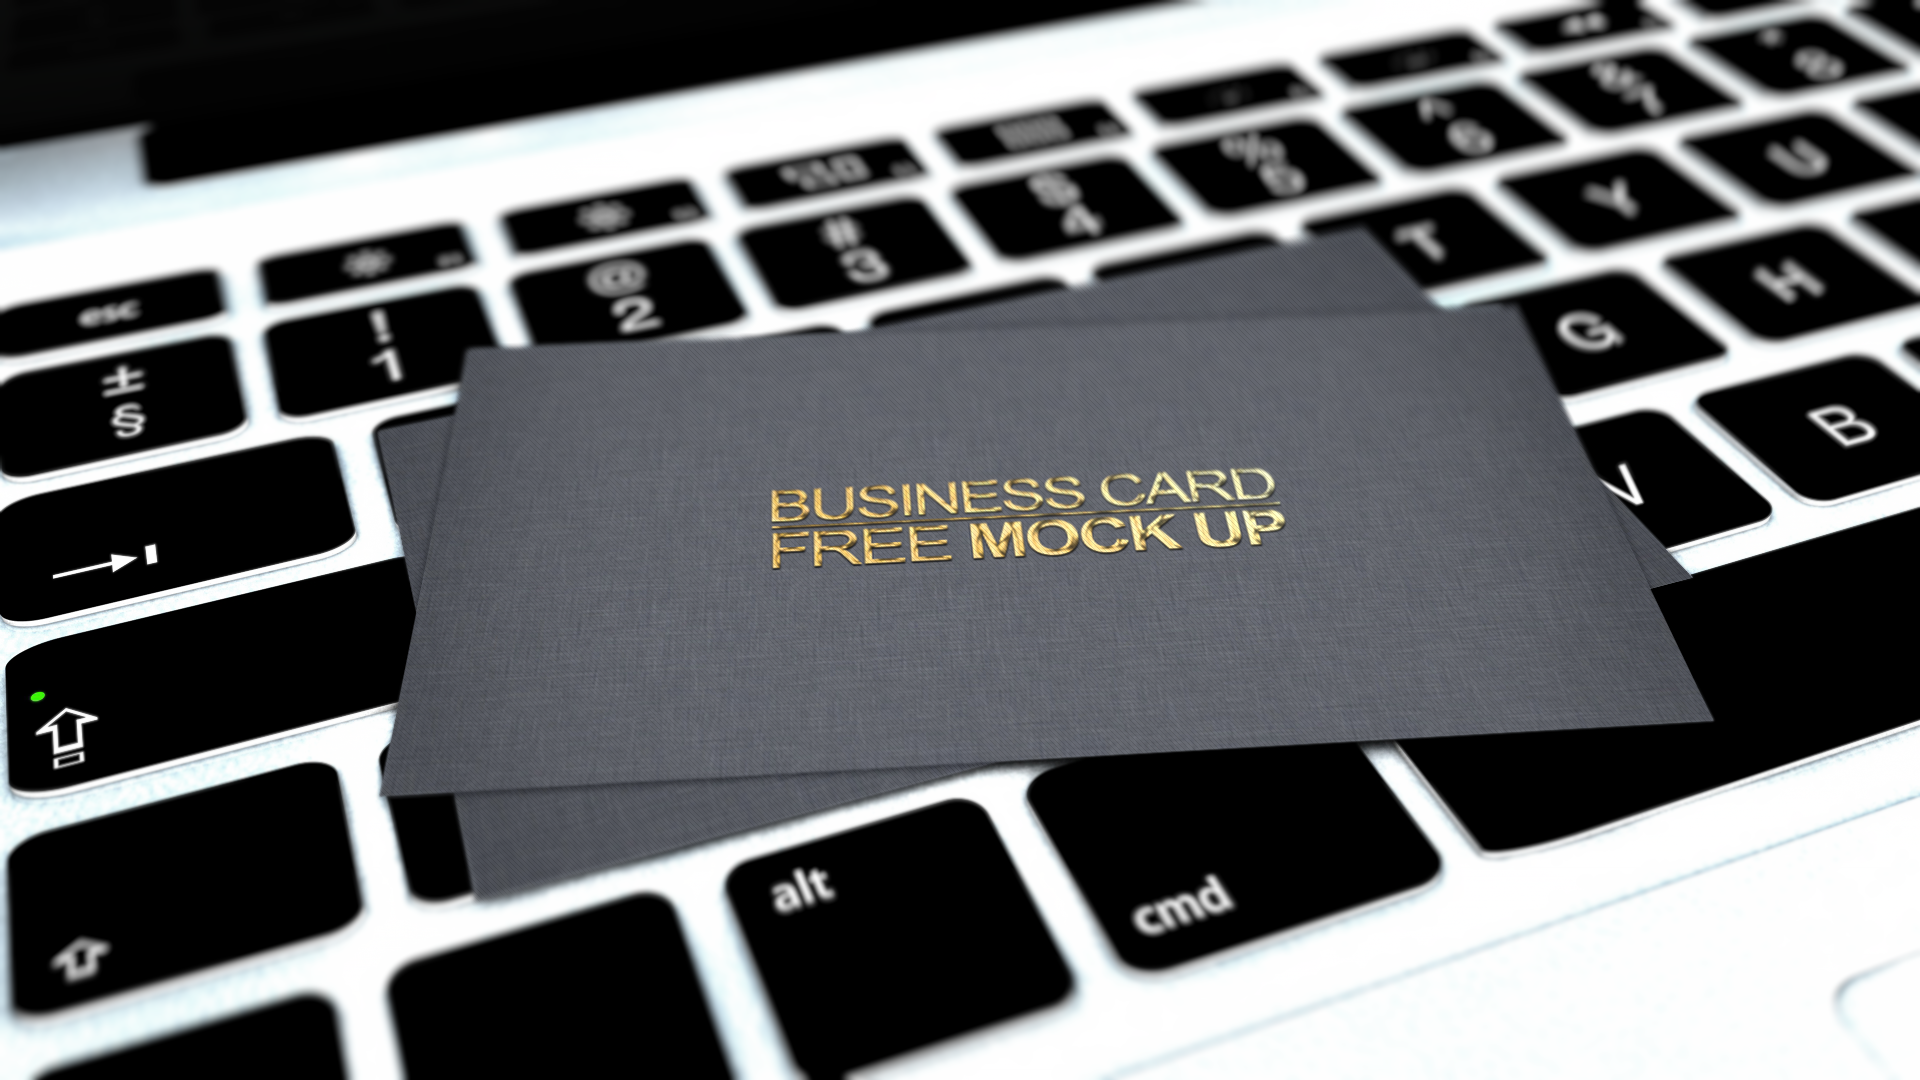 Business card free mock up psd macbook by dimkoopsiantart on business card free mock up psd macbook by dimkoops on deviantart fbccfo Gallery